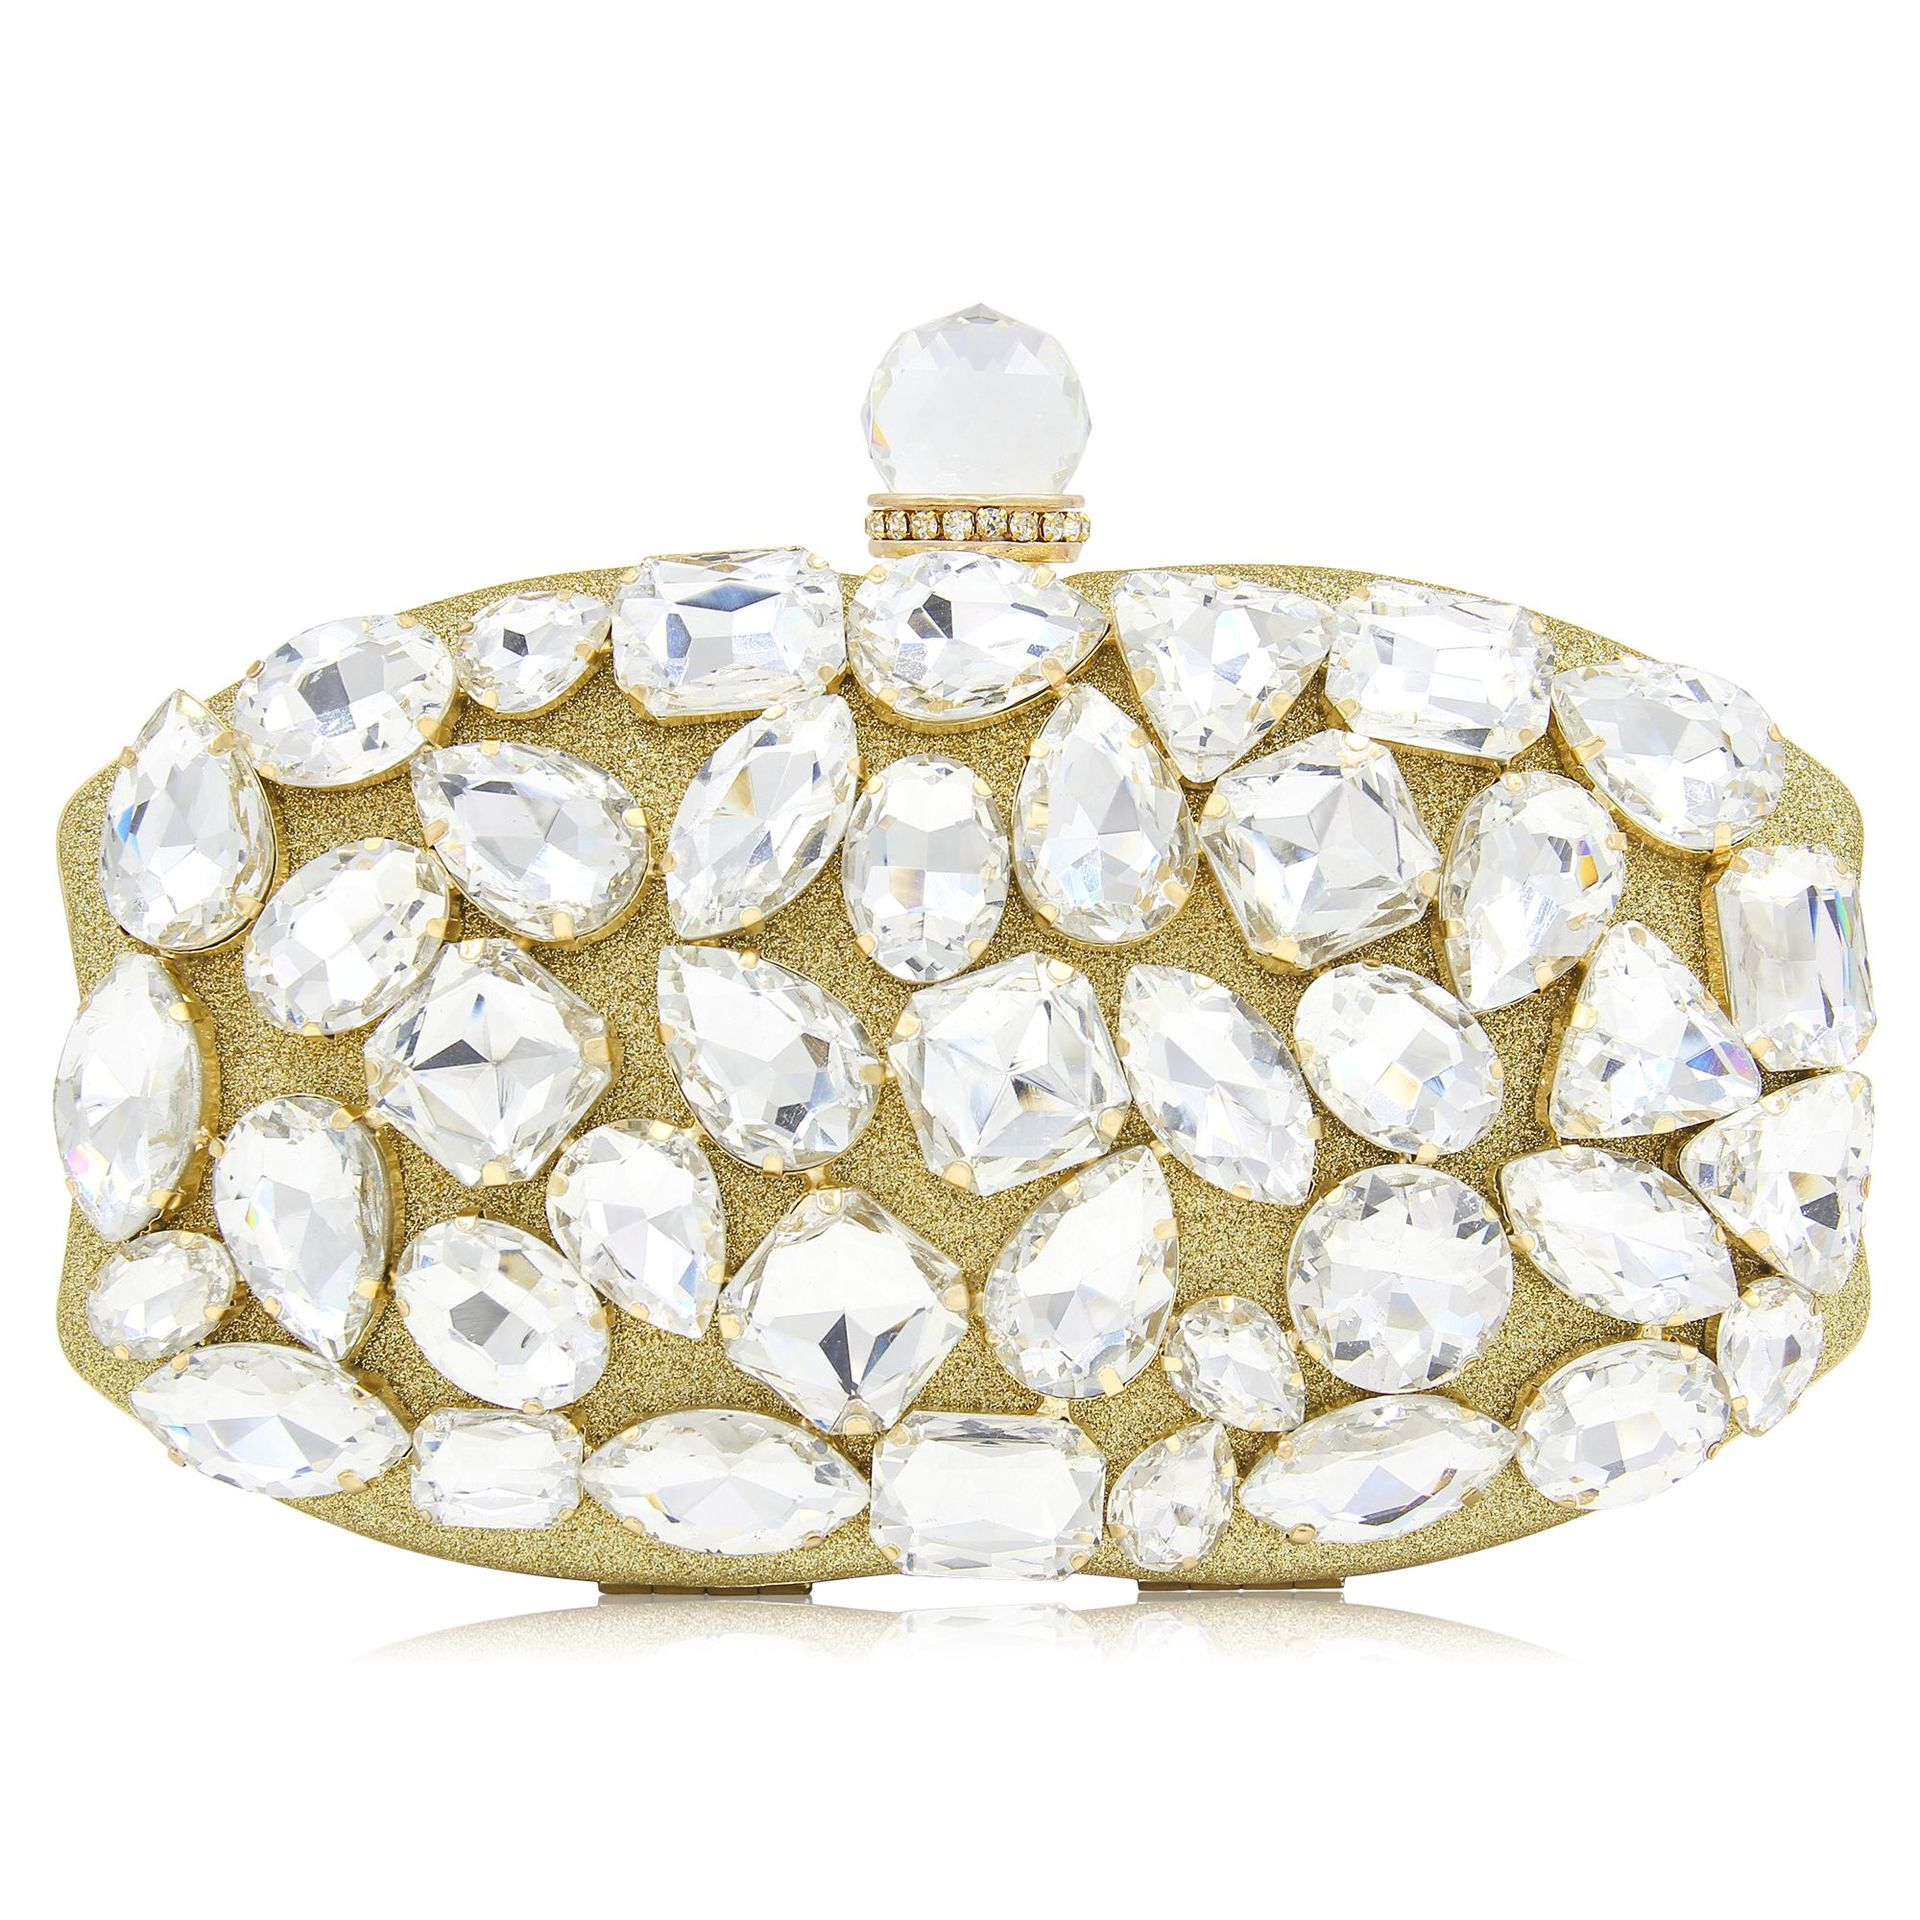 Women Crystal Diamond-encrusted Evening Clutch Bags Wedding Clutches Ladies Luxury Day Clutches Purses Cheongsam Bag luxury pearl blue clutch evening bag purse party wedding bride clutches ladies crystal diamond rhinestone bag day clutches gifts